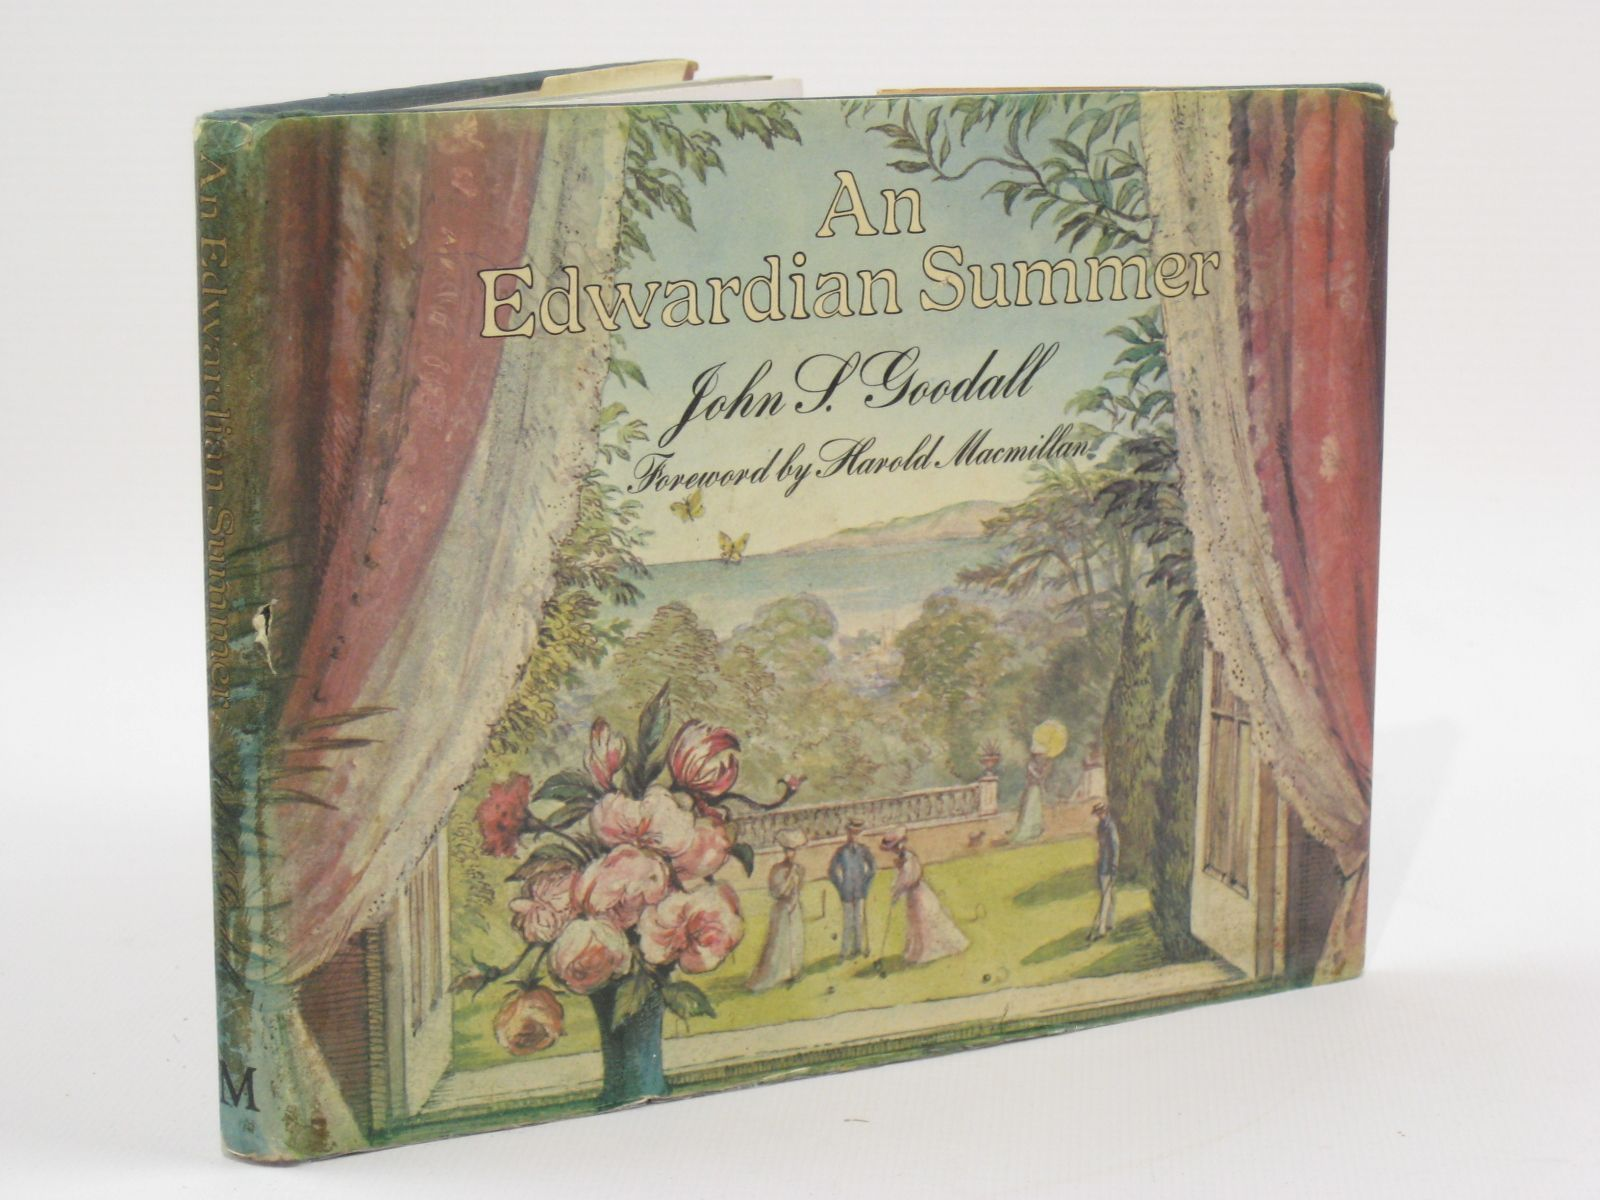 Photo of AN EDWARDIAN SUMMER written by Goodall, John S. illustrated by Goodall, John S. published by Macmillan London Limited (STOCK CODE: 1407098)  for sale by Stella & Rose's Books